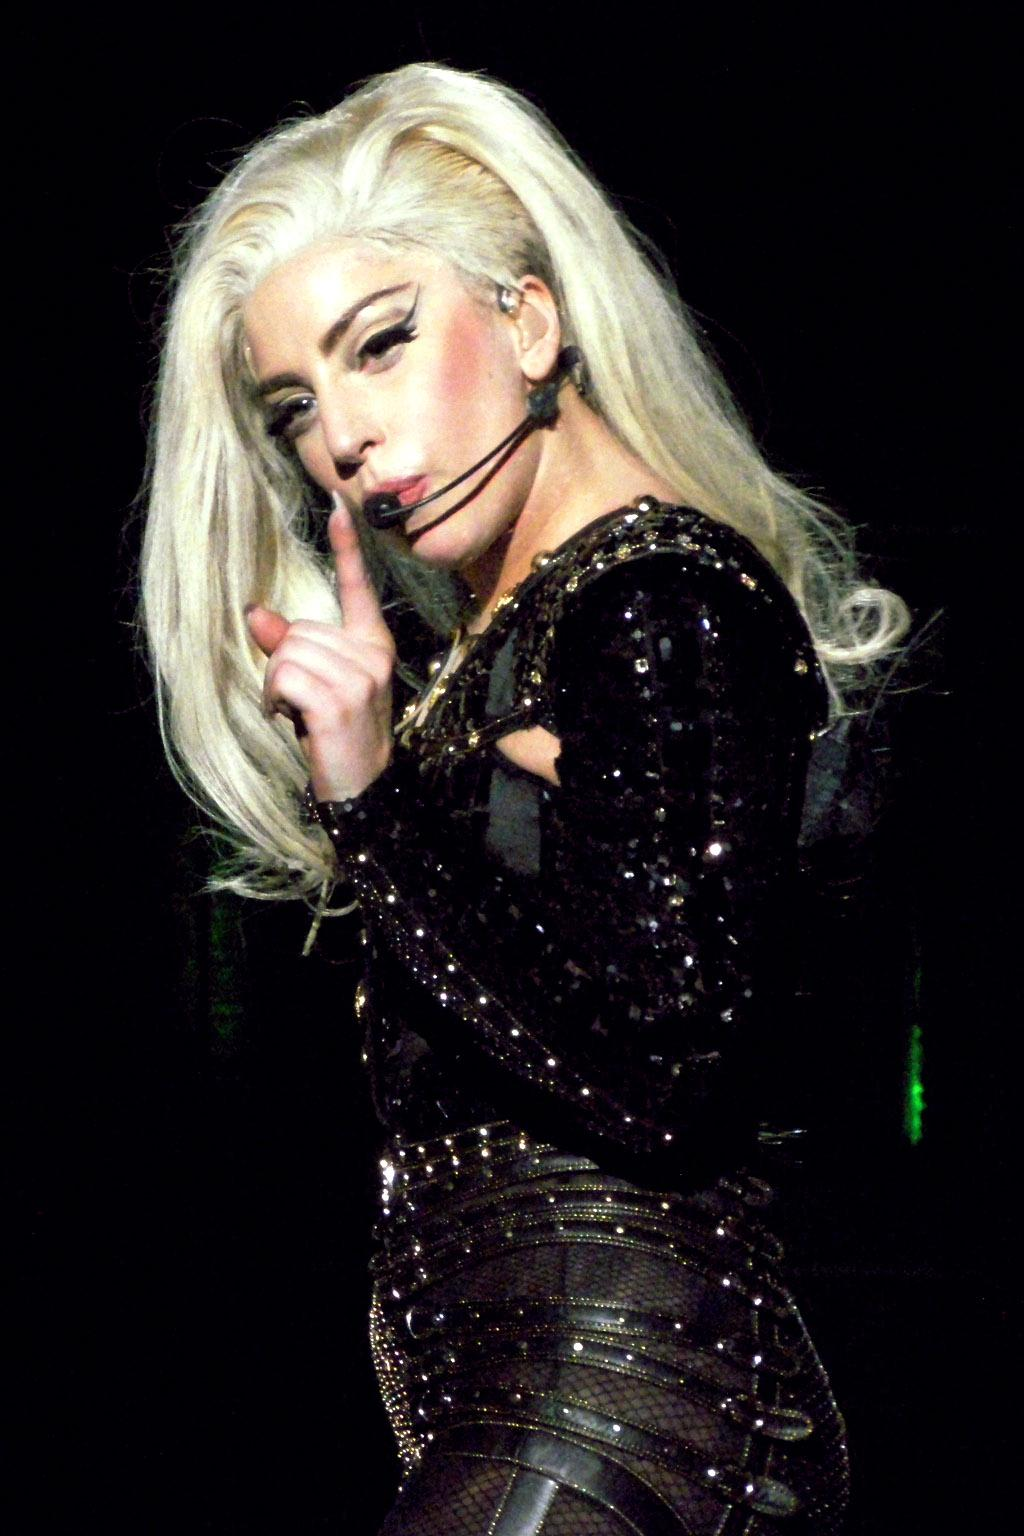 Lady Gaga performing on stage. Image courtesy of Wikipedia.